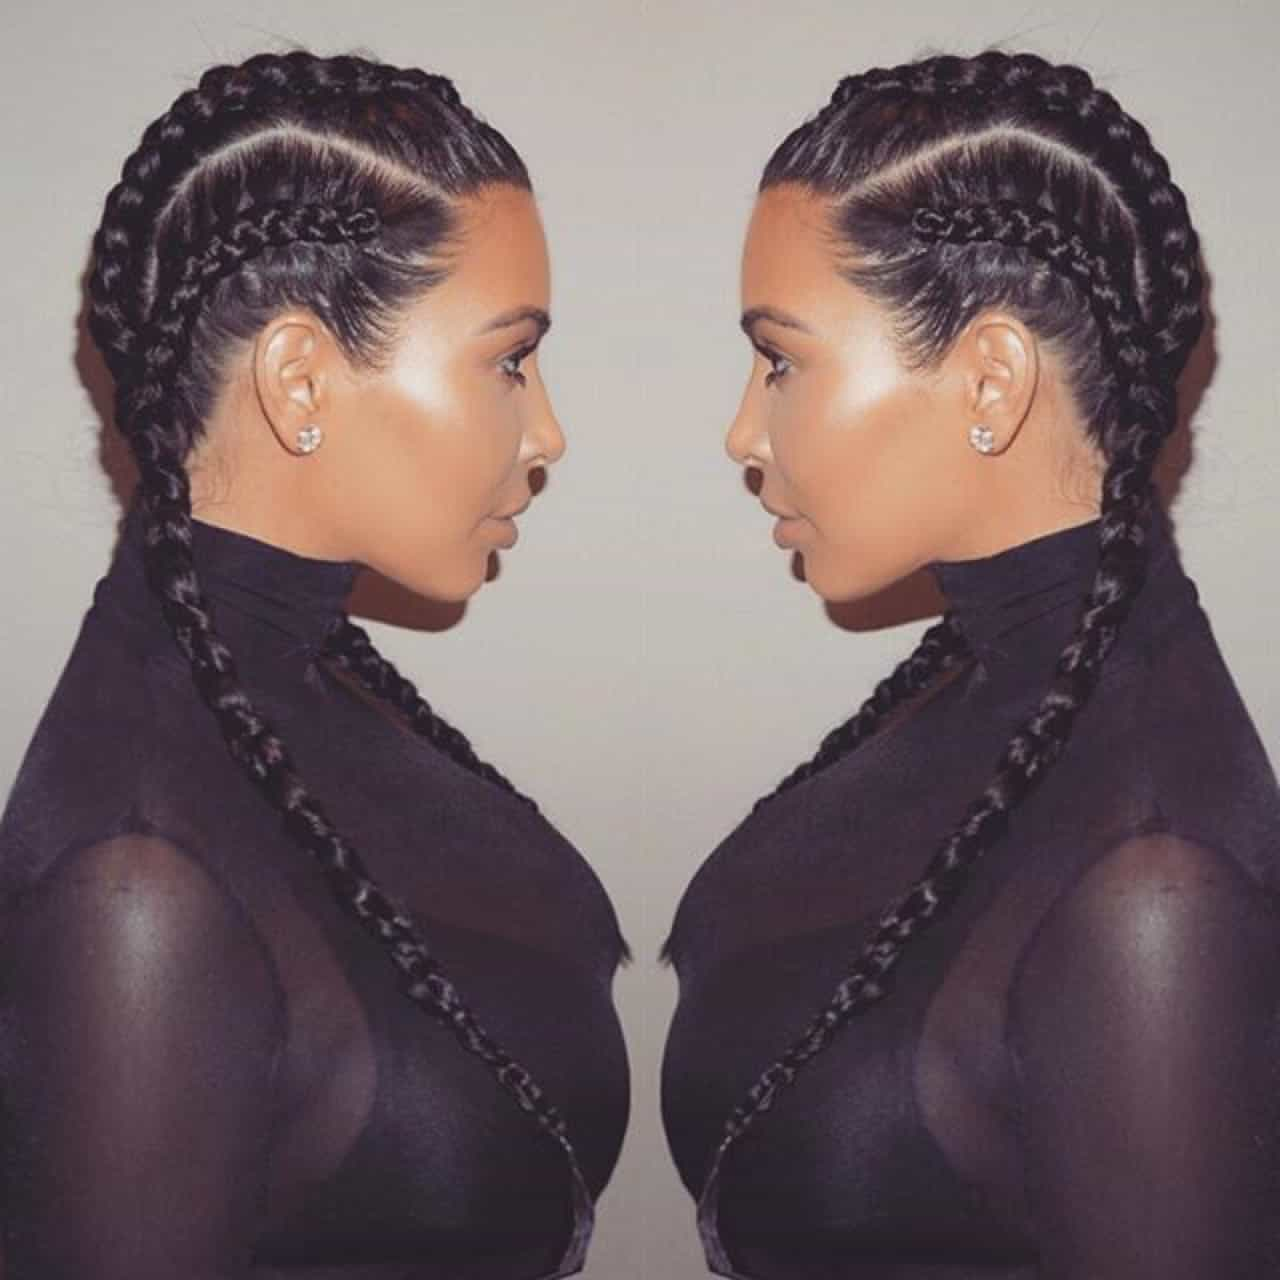 boxer braids: the hairstyle that's taking over! – the fashion tag blog